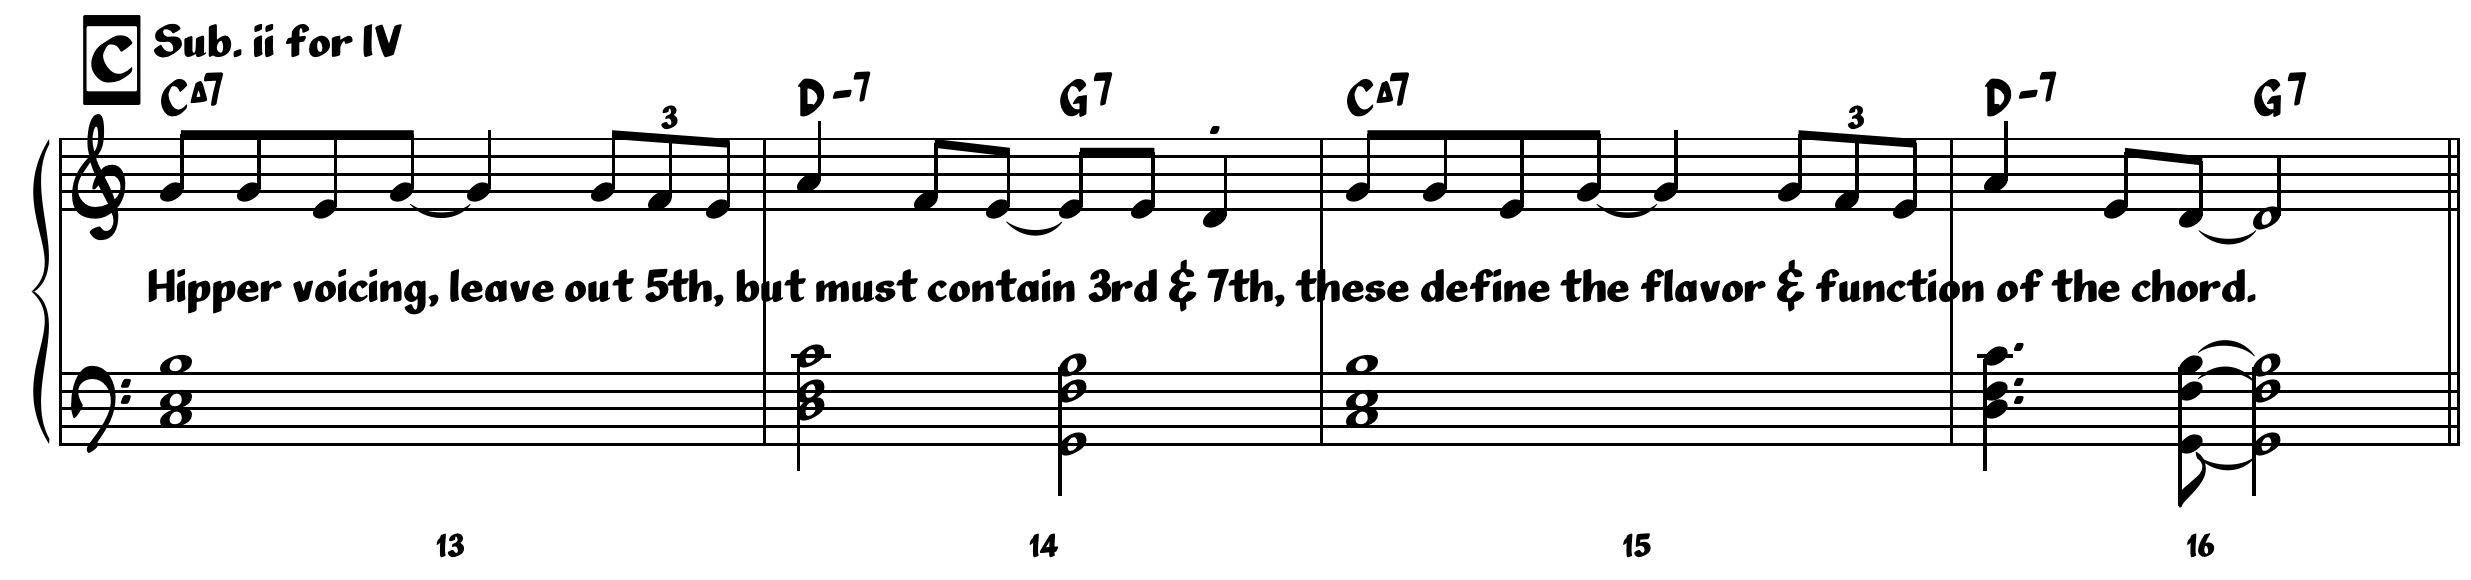 Jazz writing part 1 all of the elements melody harmony and voicing are correct for the jazz genre hexwebz Choice Image